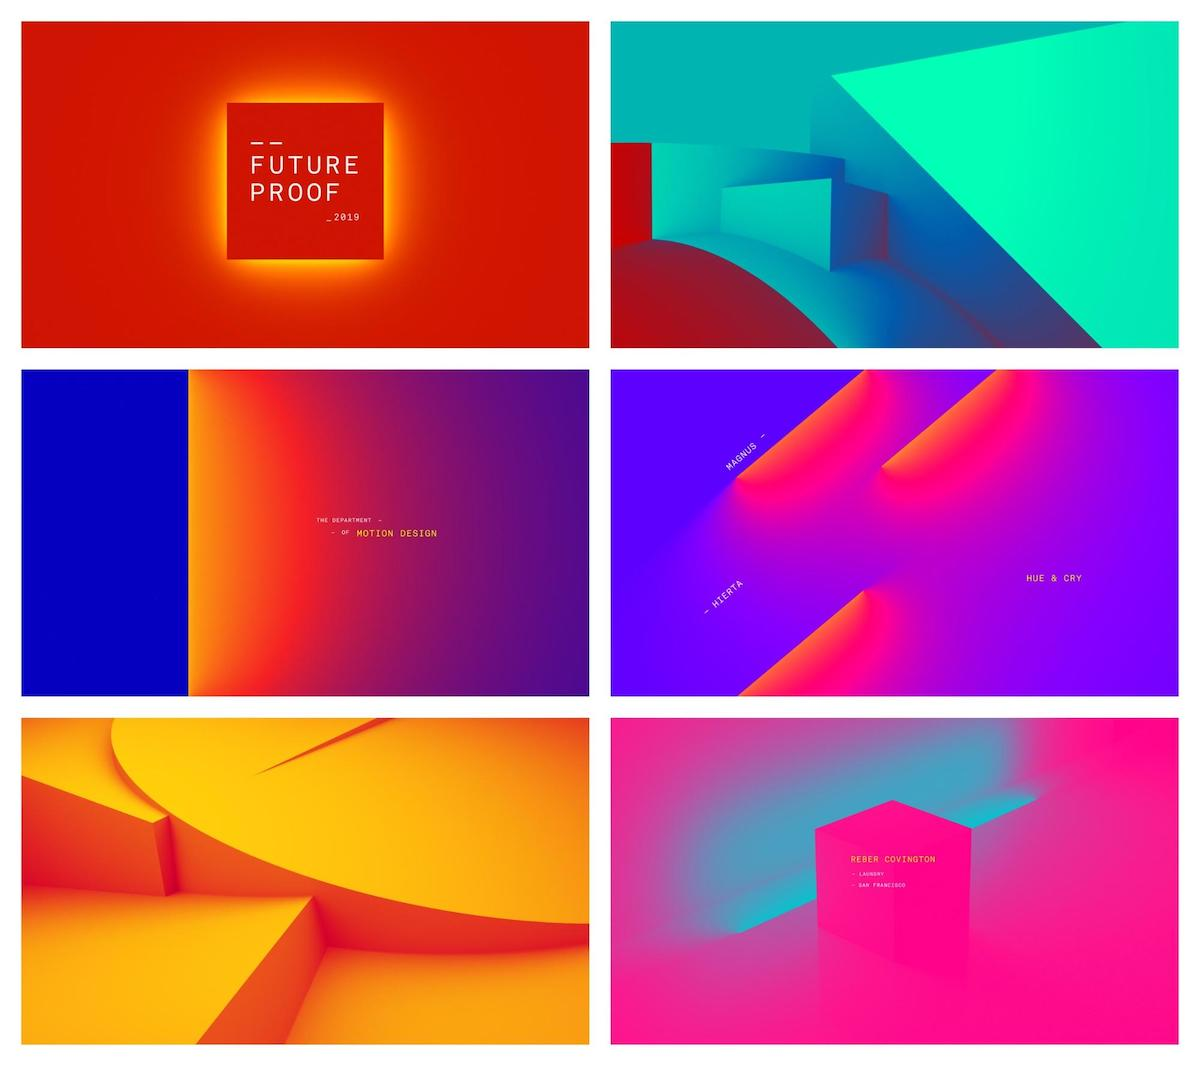 Graphic Design Trends - Complex Gradients and Duotones 8